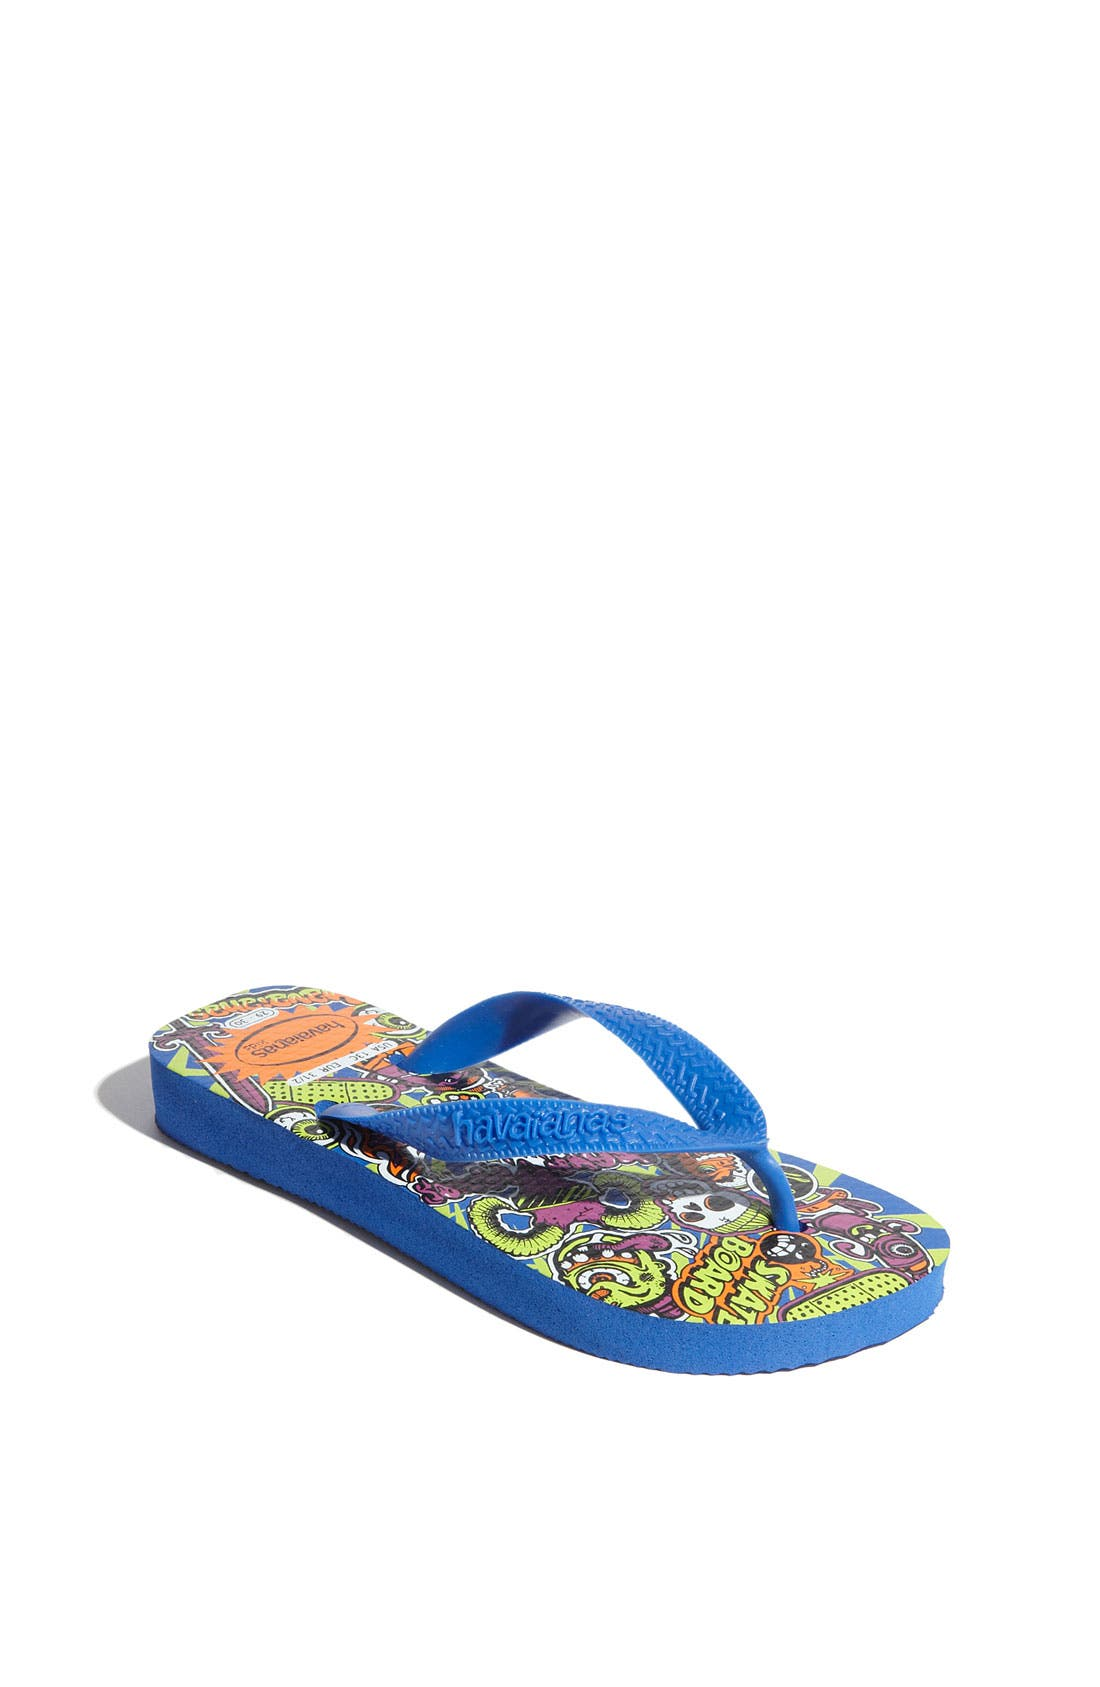 Alternate Image 1 Selected - Havaianas 'Skate' Sandal (Toddler & Little Kid)